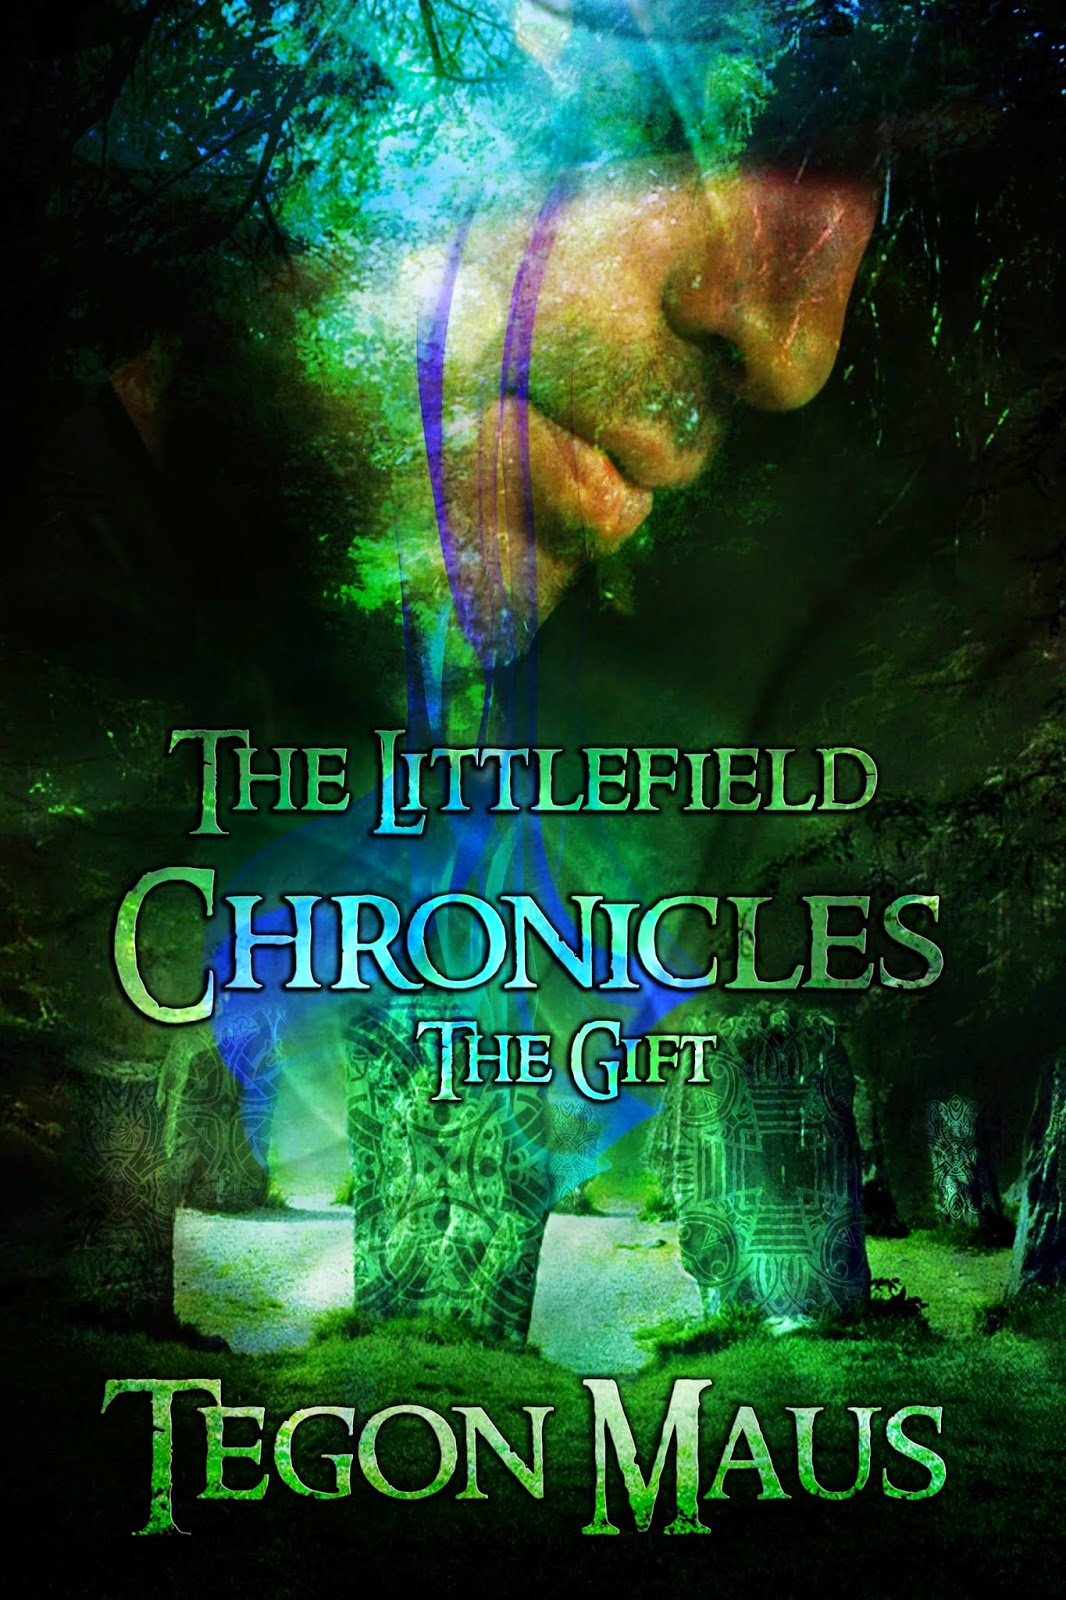 Tegon Maus Gift Littlefield Chronicles Book Cover